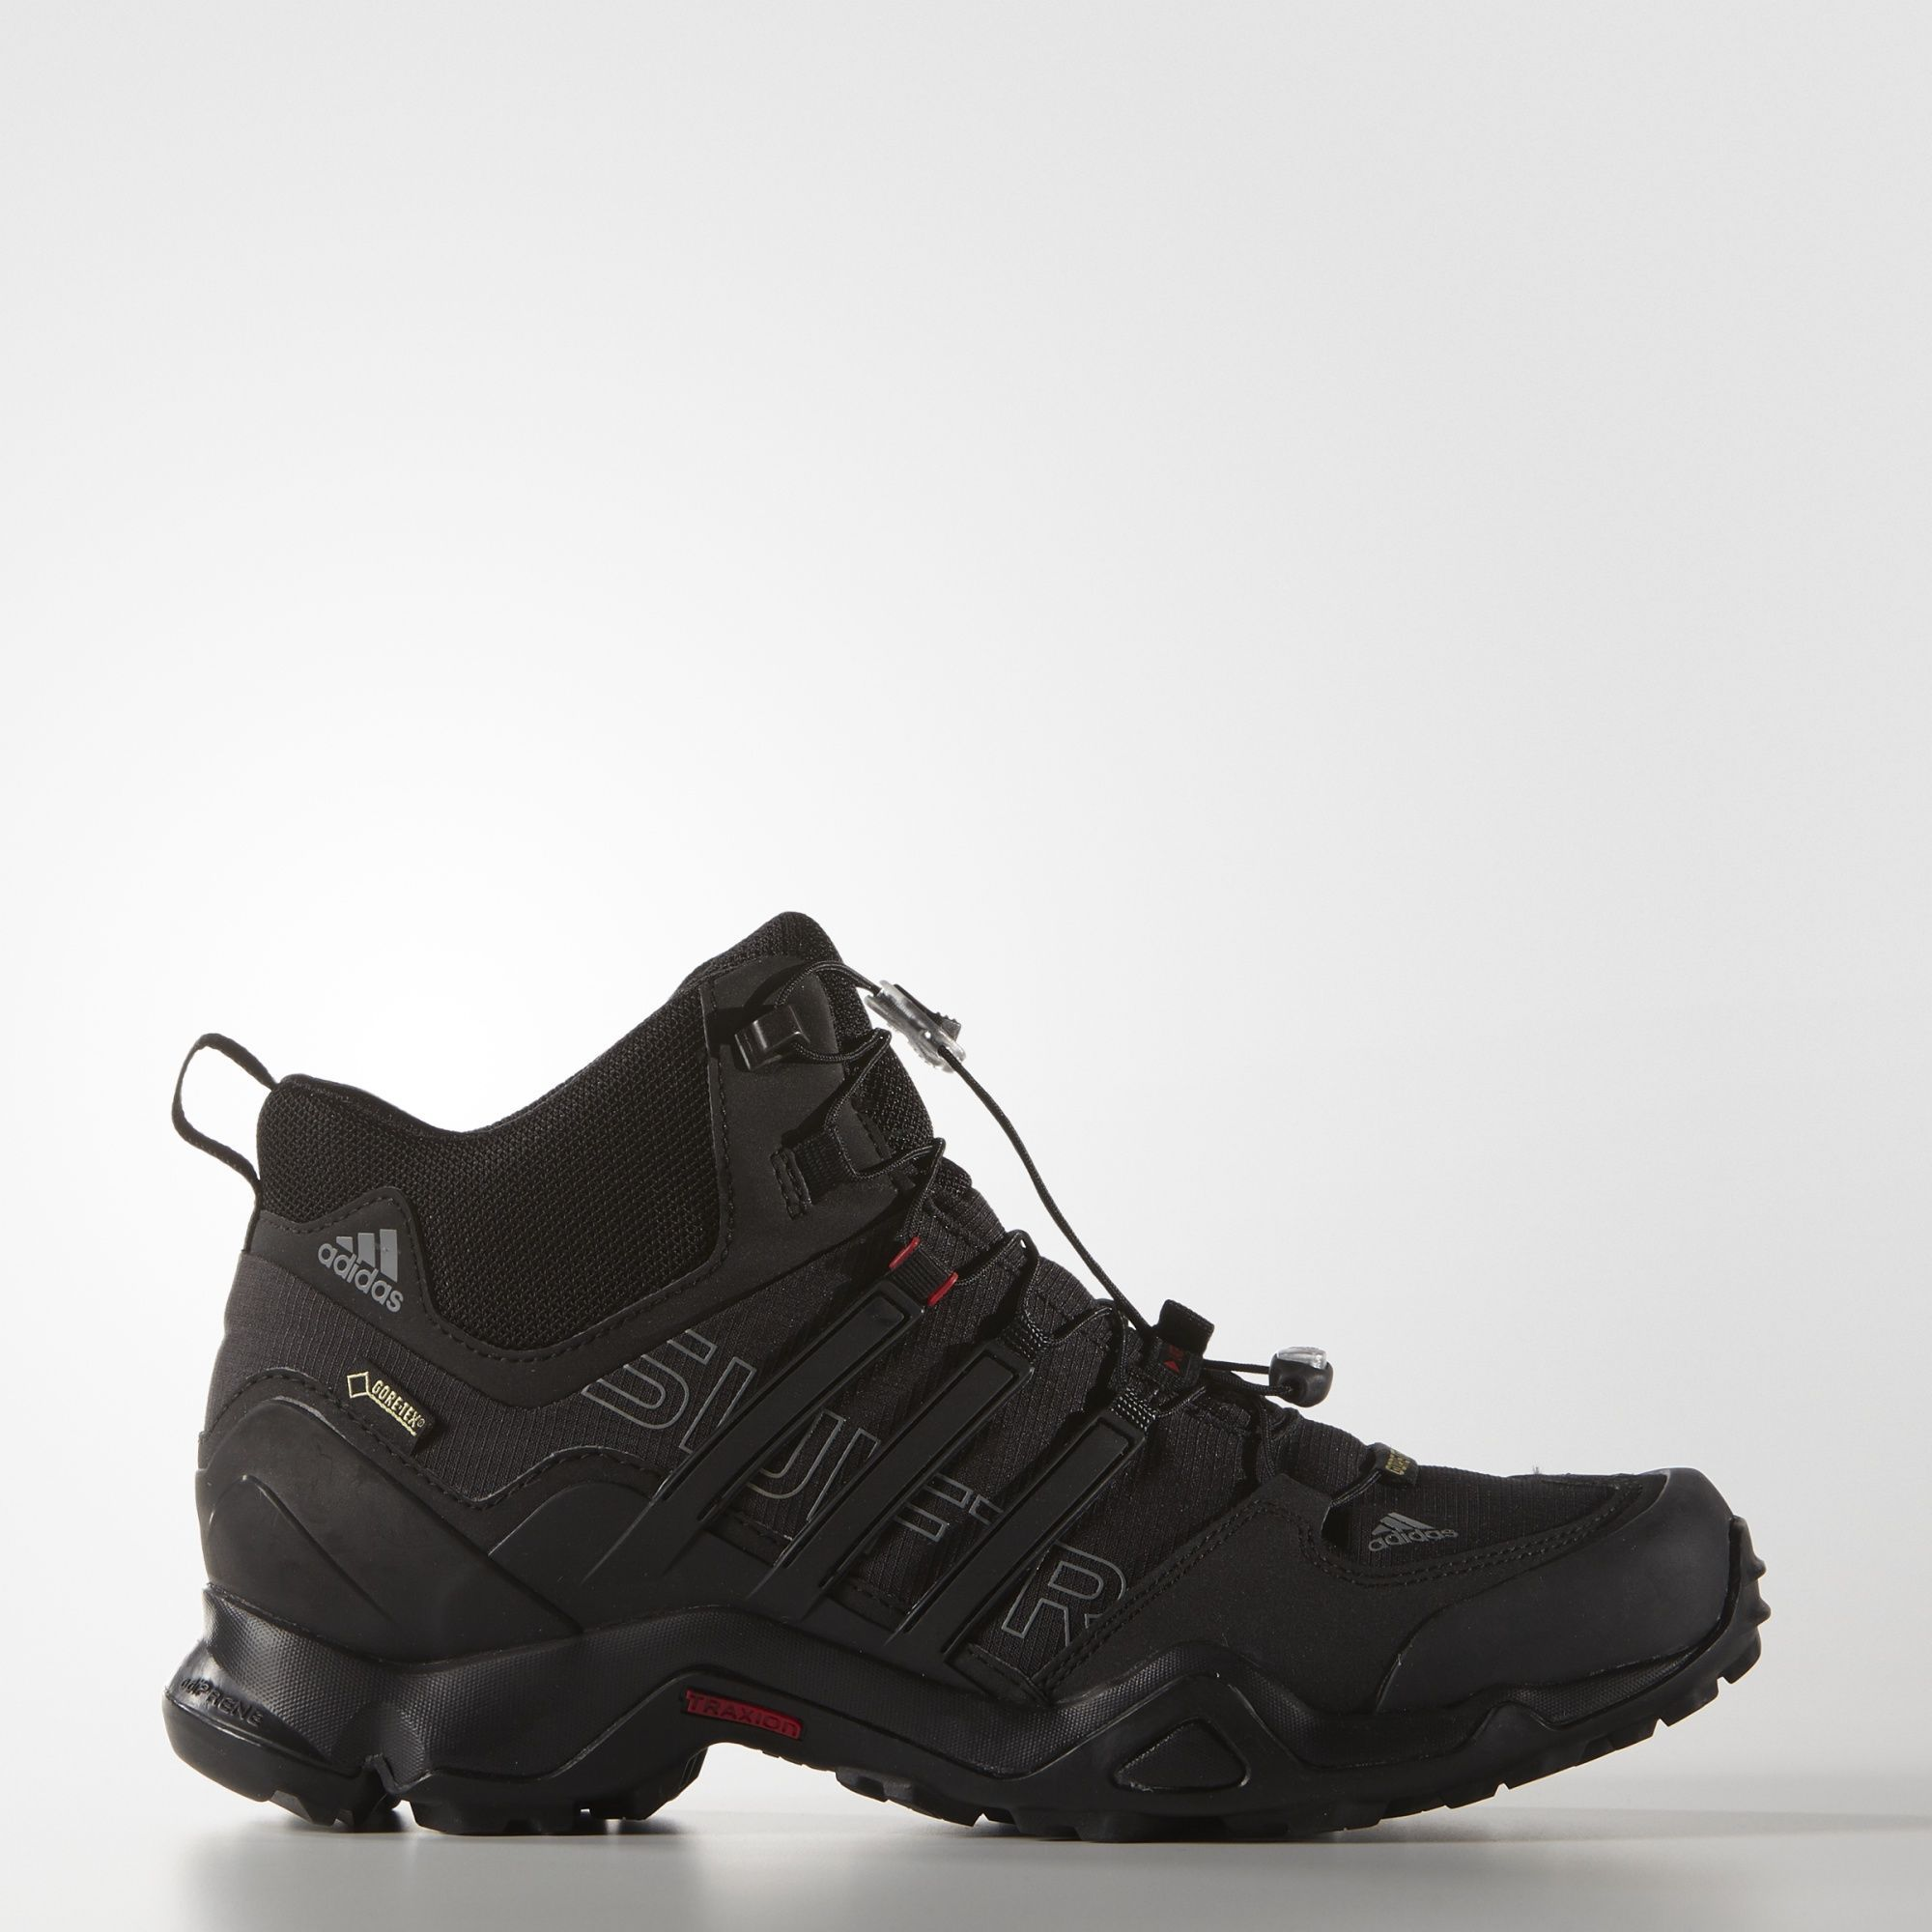 73cf97a4 adidas - Terrex Swift R Mid GTX Shoes | 登山用鞋 ( Hiking Boot )